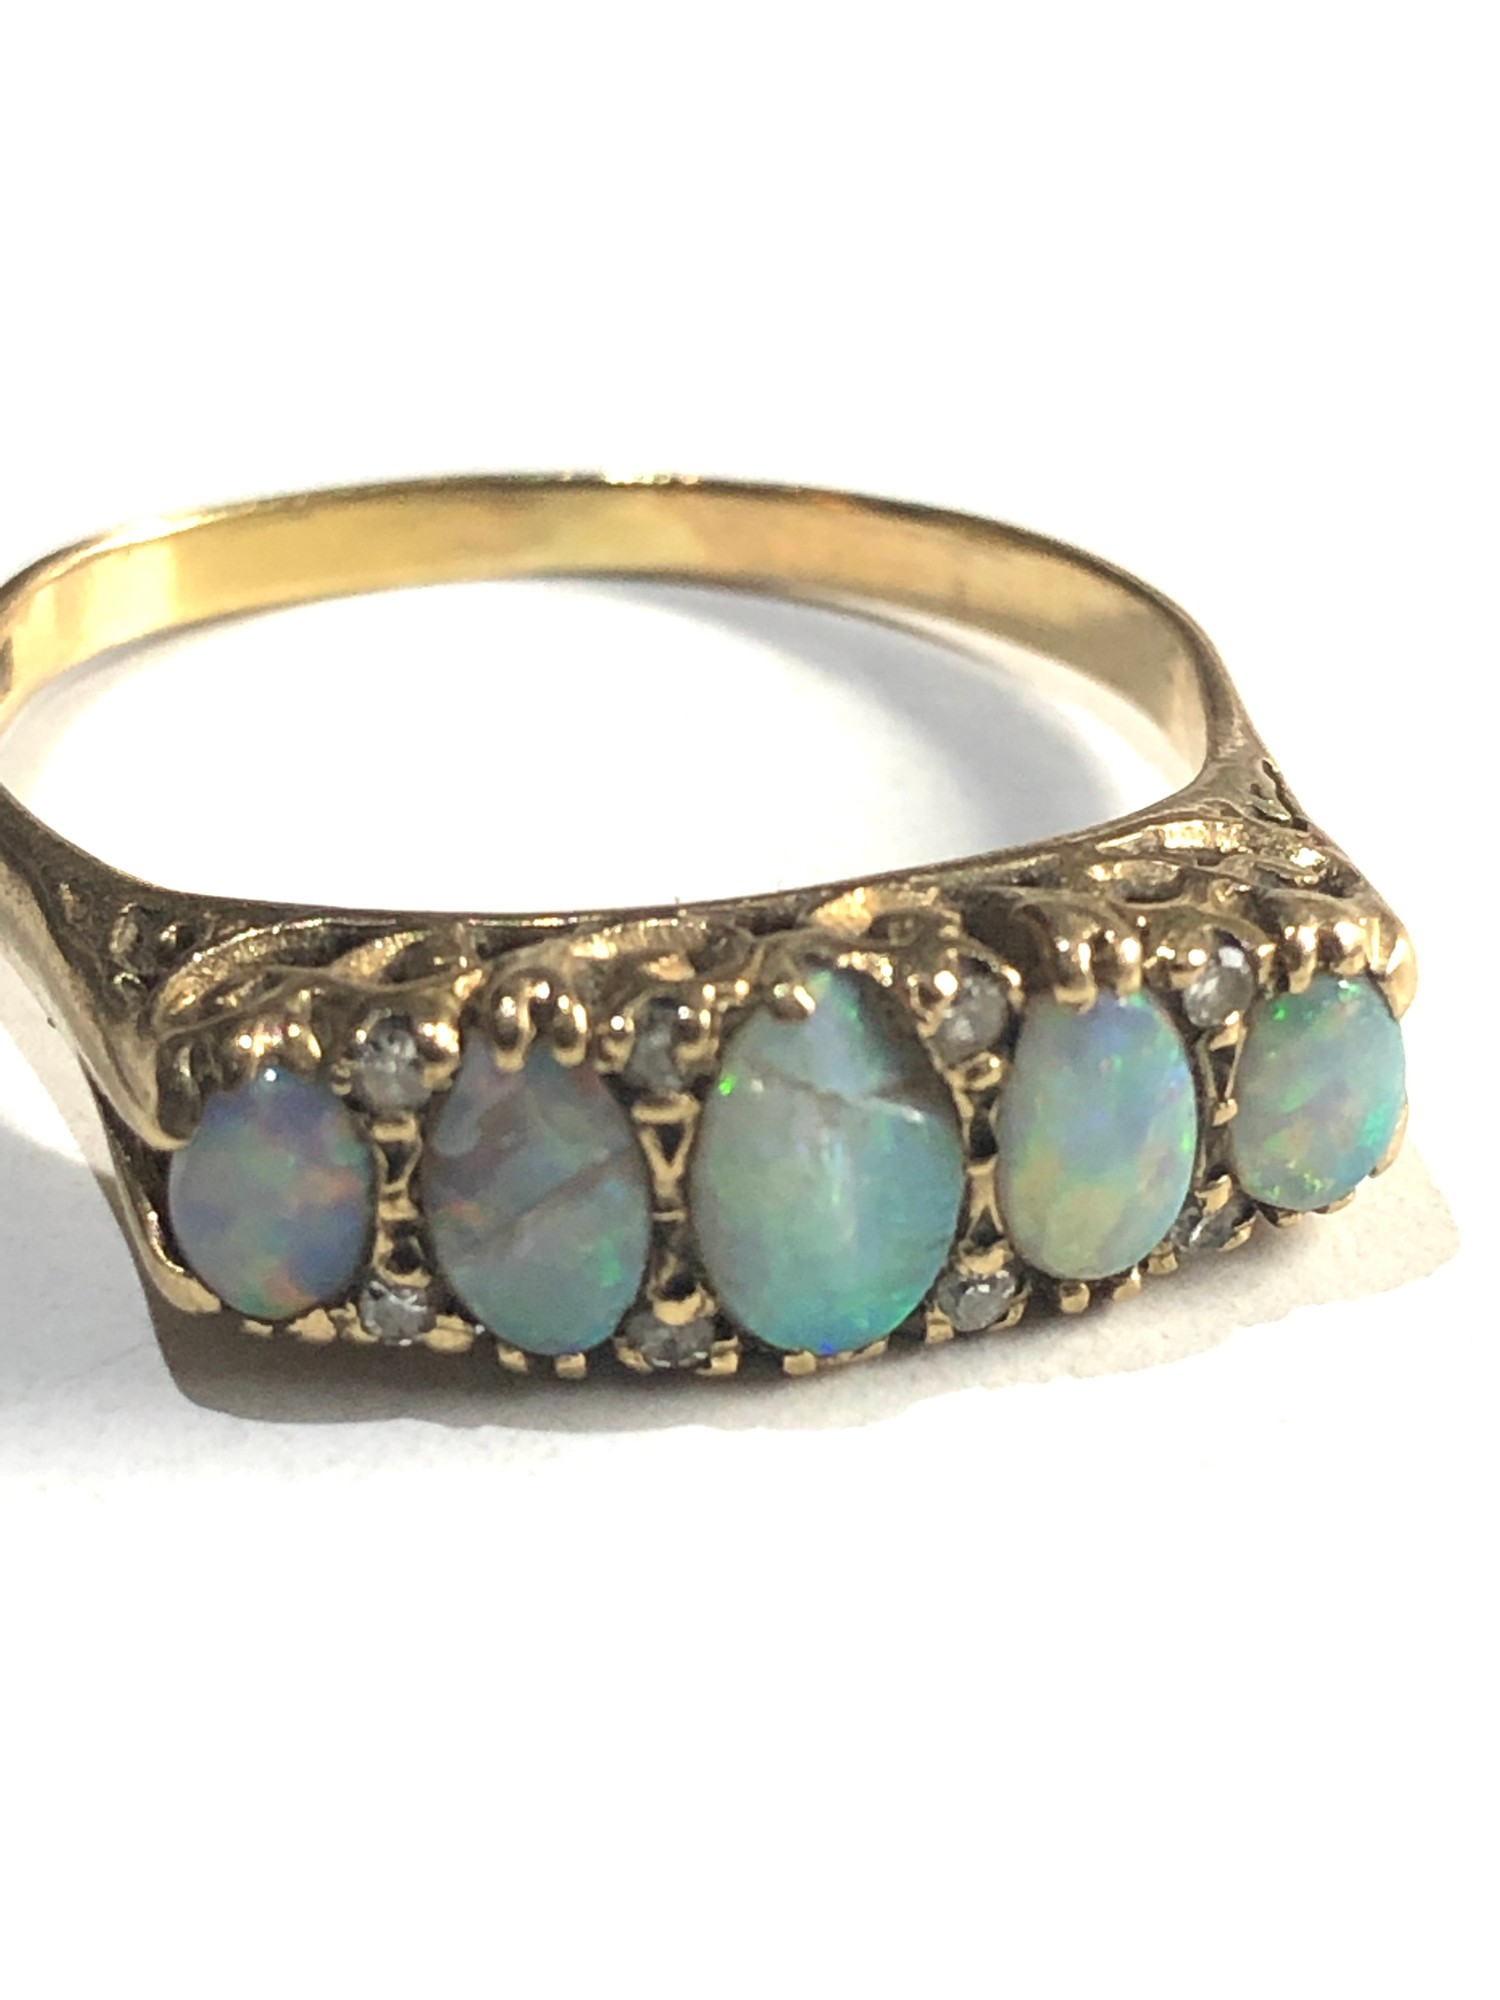 vintage 9ct Gold opal and diamond 5 stone ring *two opals are chipped - Image 2 of 3